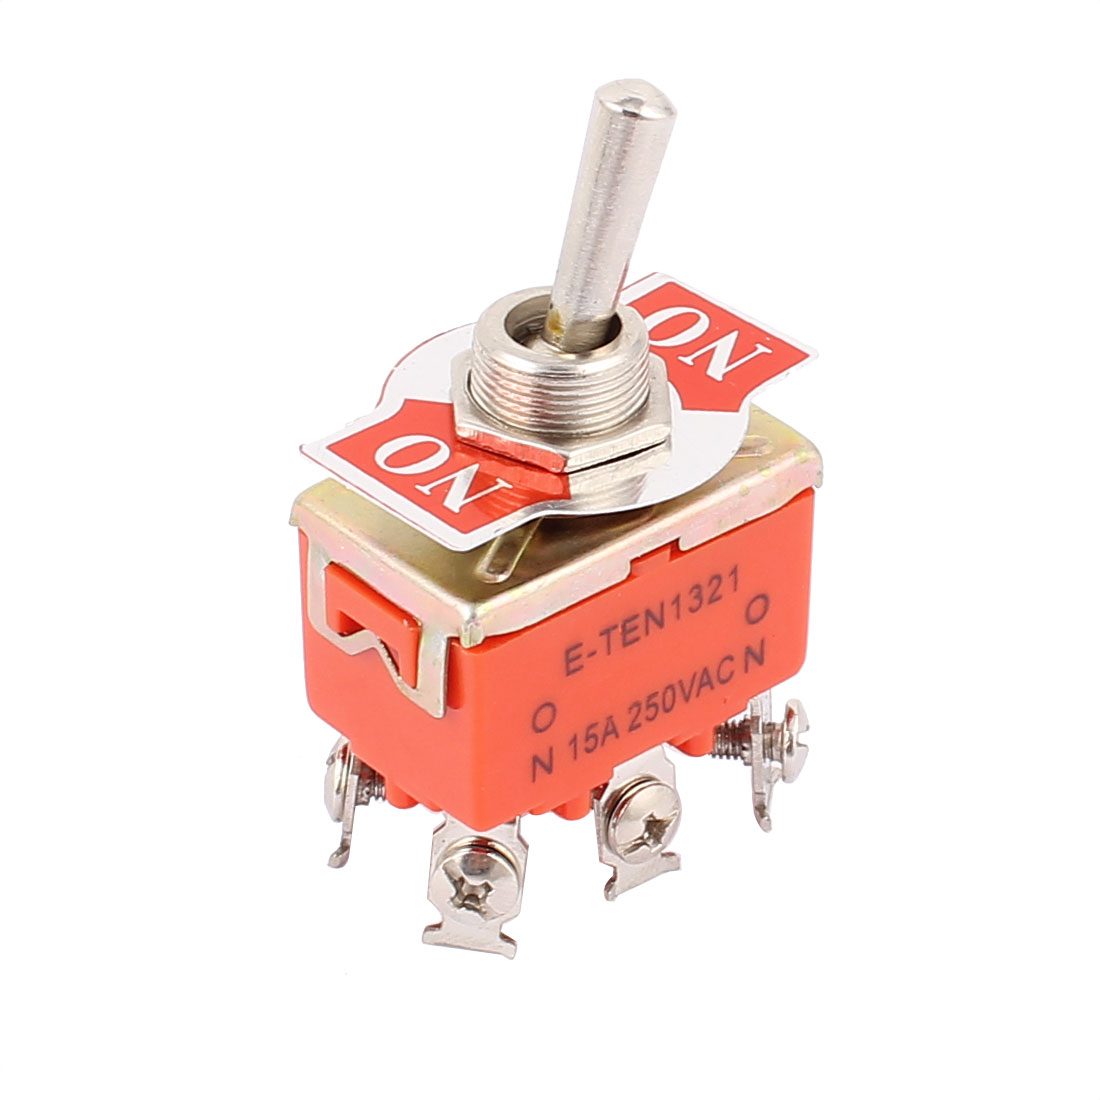 AC 250V 15A ON/ON 2 Position DP2T DPDT 6 Pins Latching Toggle Switch